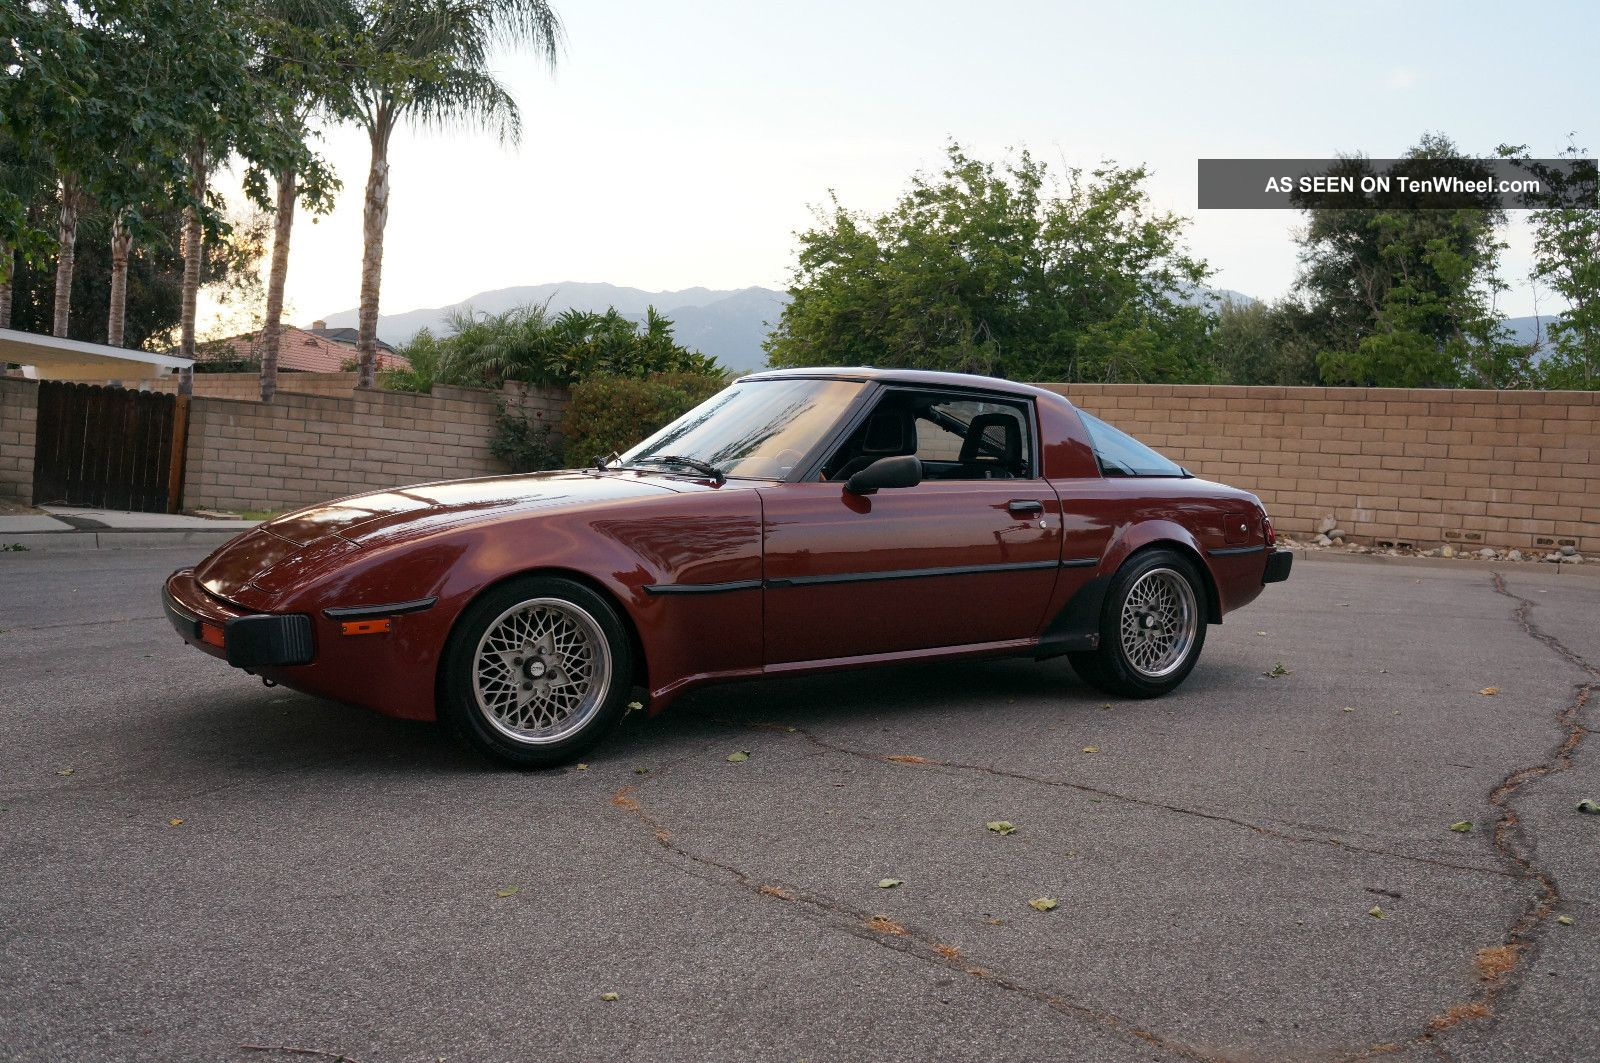 Image result for 1980s rx7